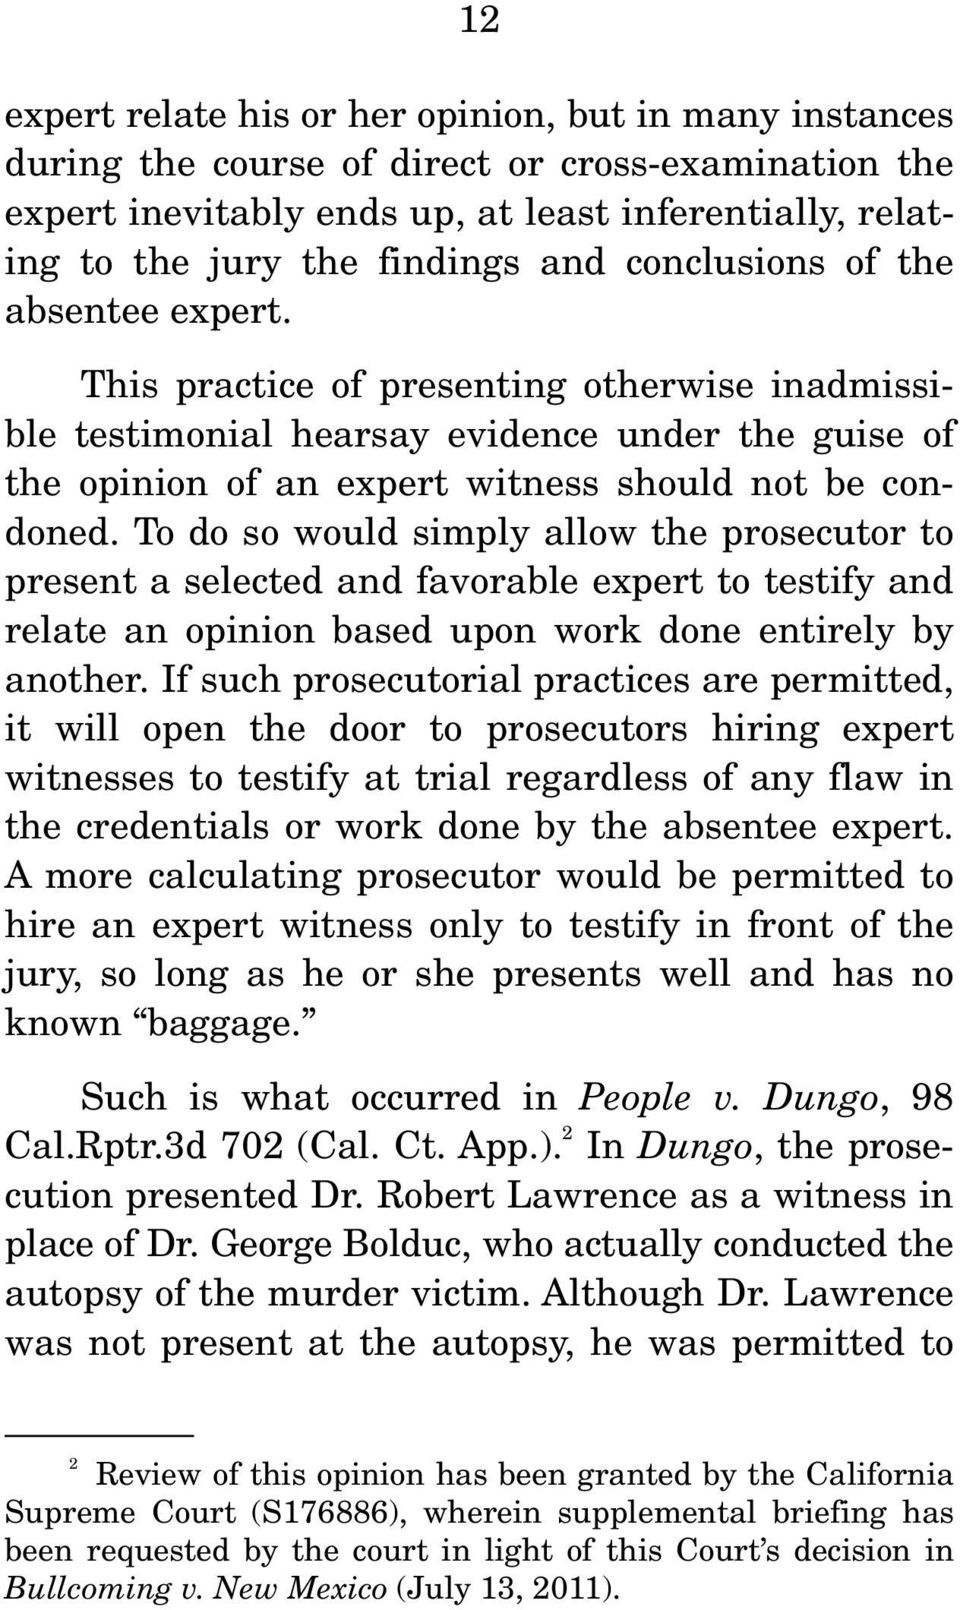 To do so would simply allow the prosecutor to present a selected and favorable expert to testify and relate an opinion based upon work done entirely by another.